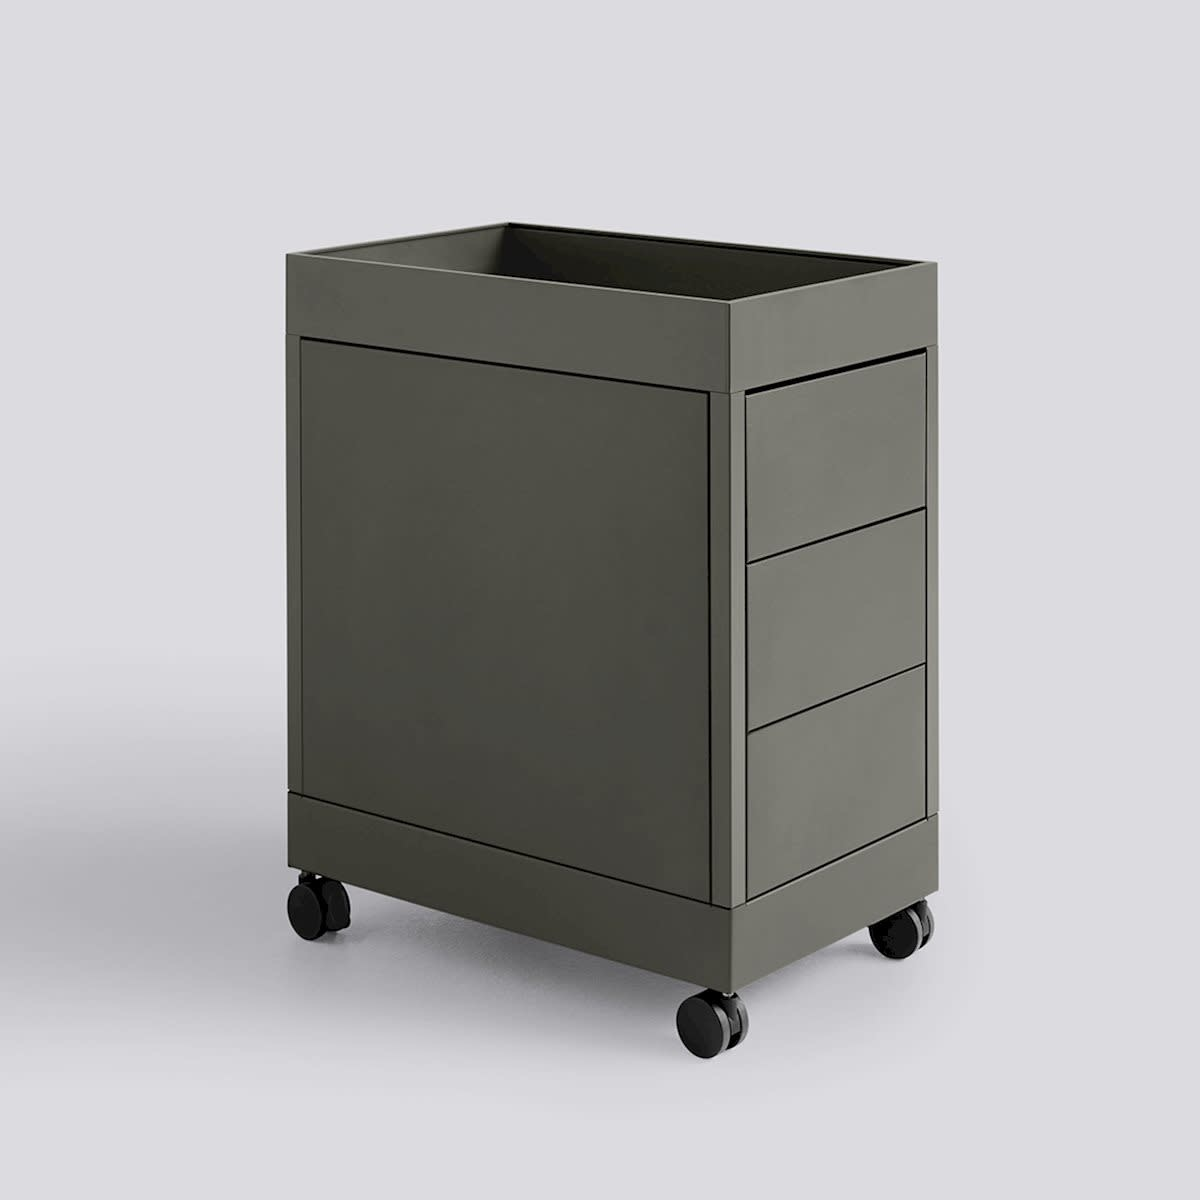 New Order Trolley - B 3 Drawer and tray top incl. lock-3